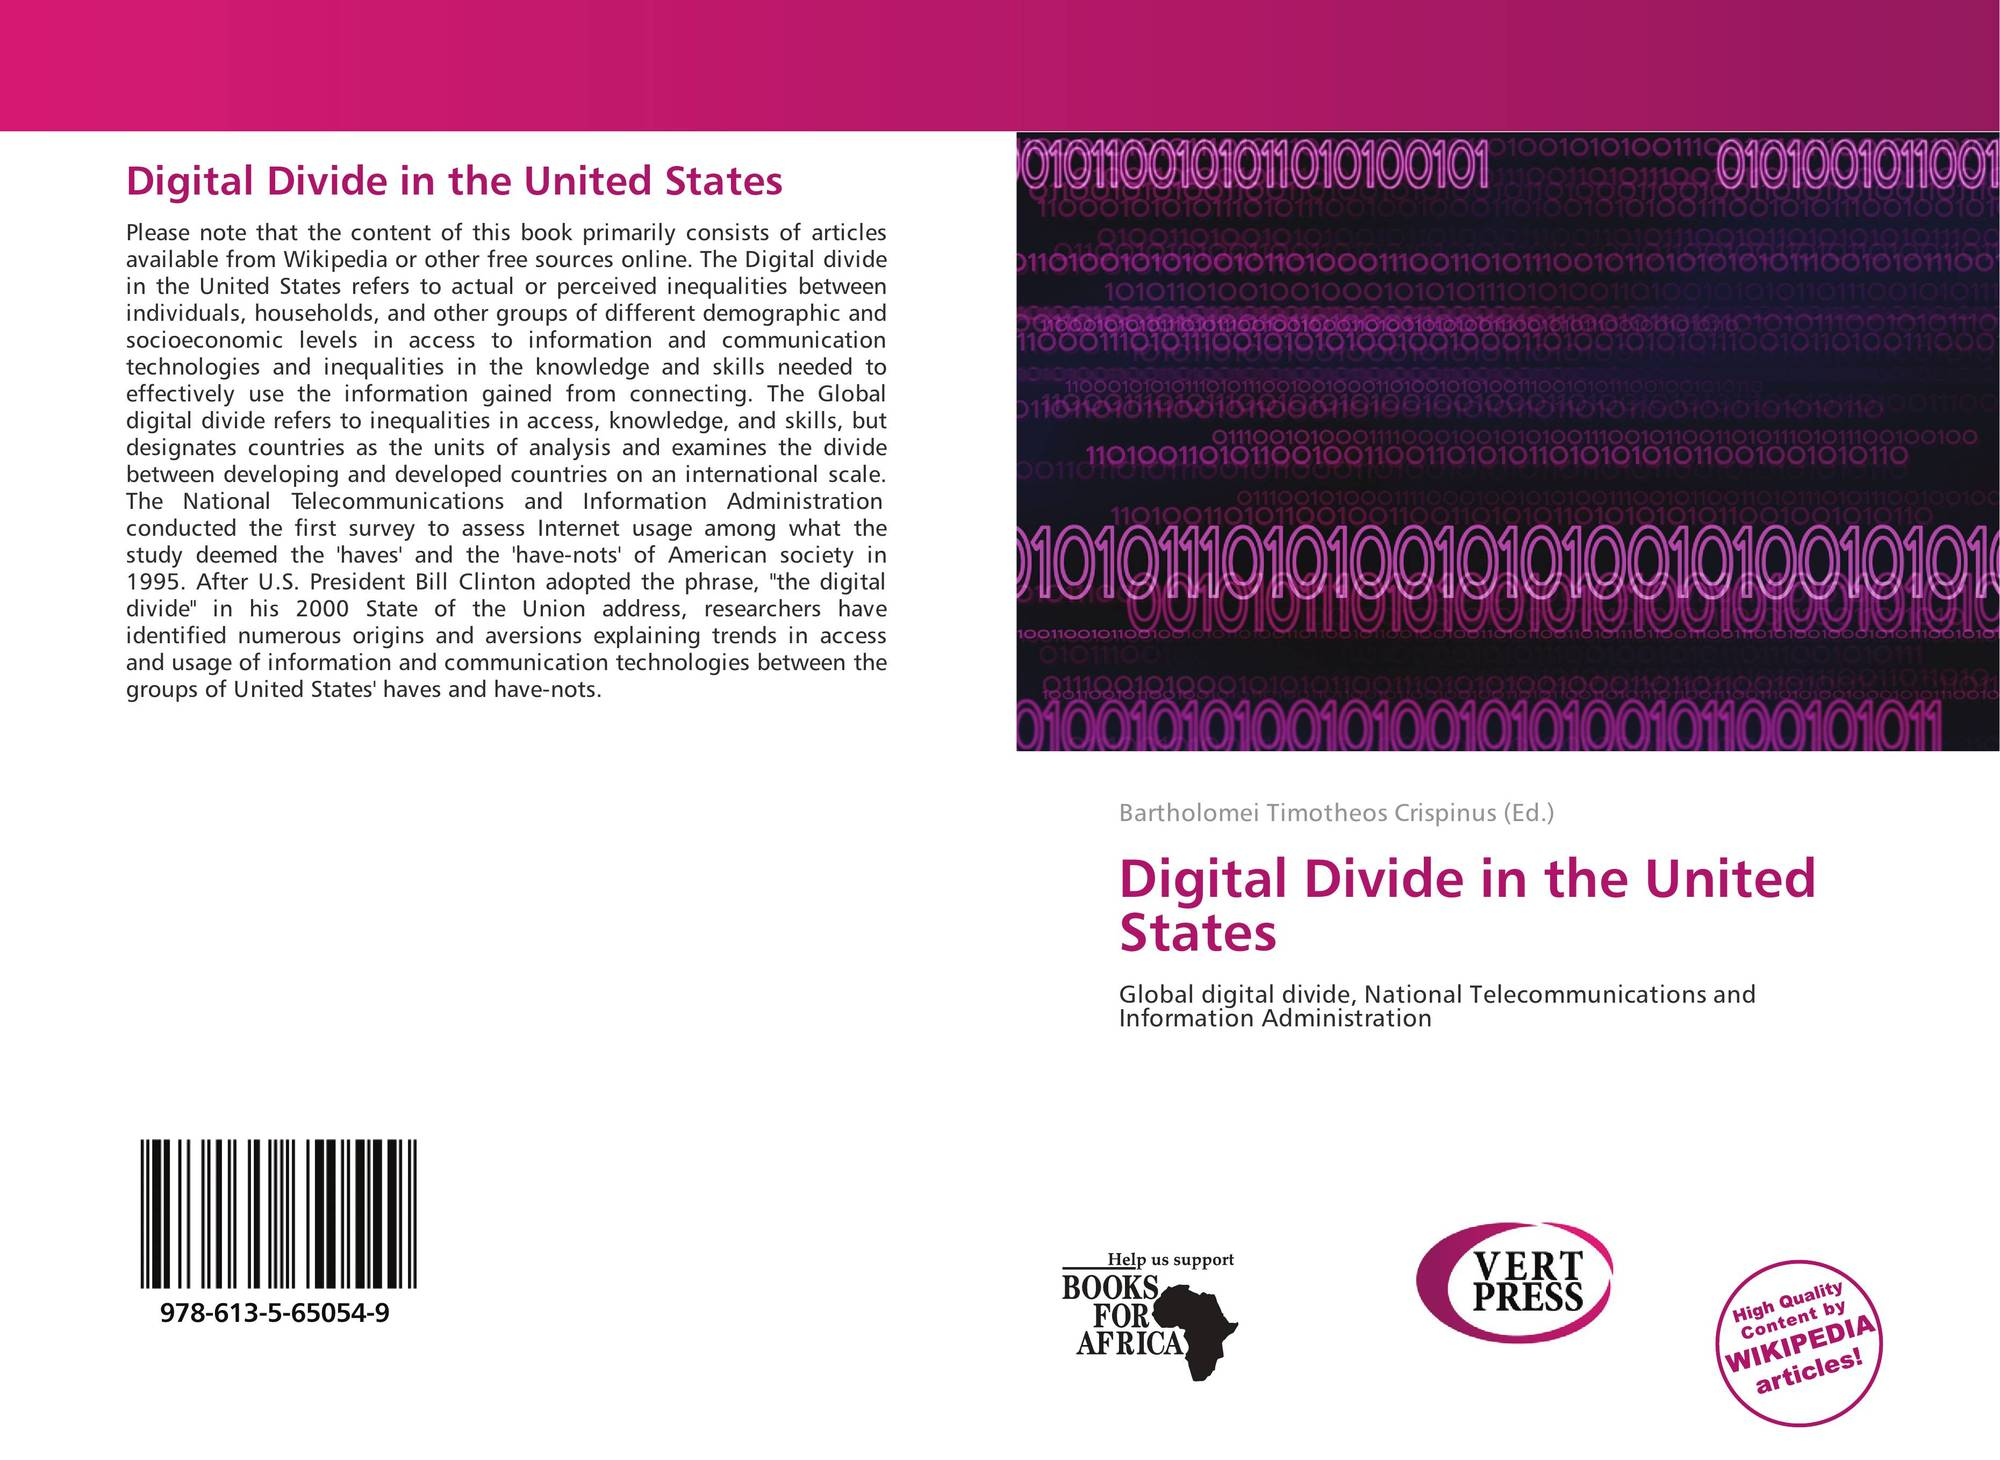 an introduction to the australian digital divide Digital equity and social inclusion introduction in the australian context, the digital divide is exacerbated by the sheer size of the country and.